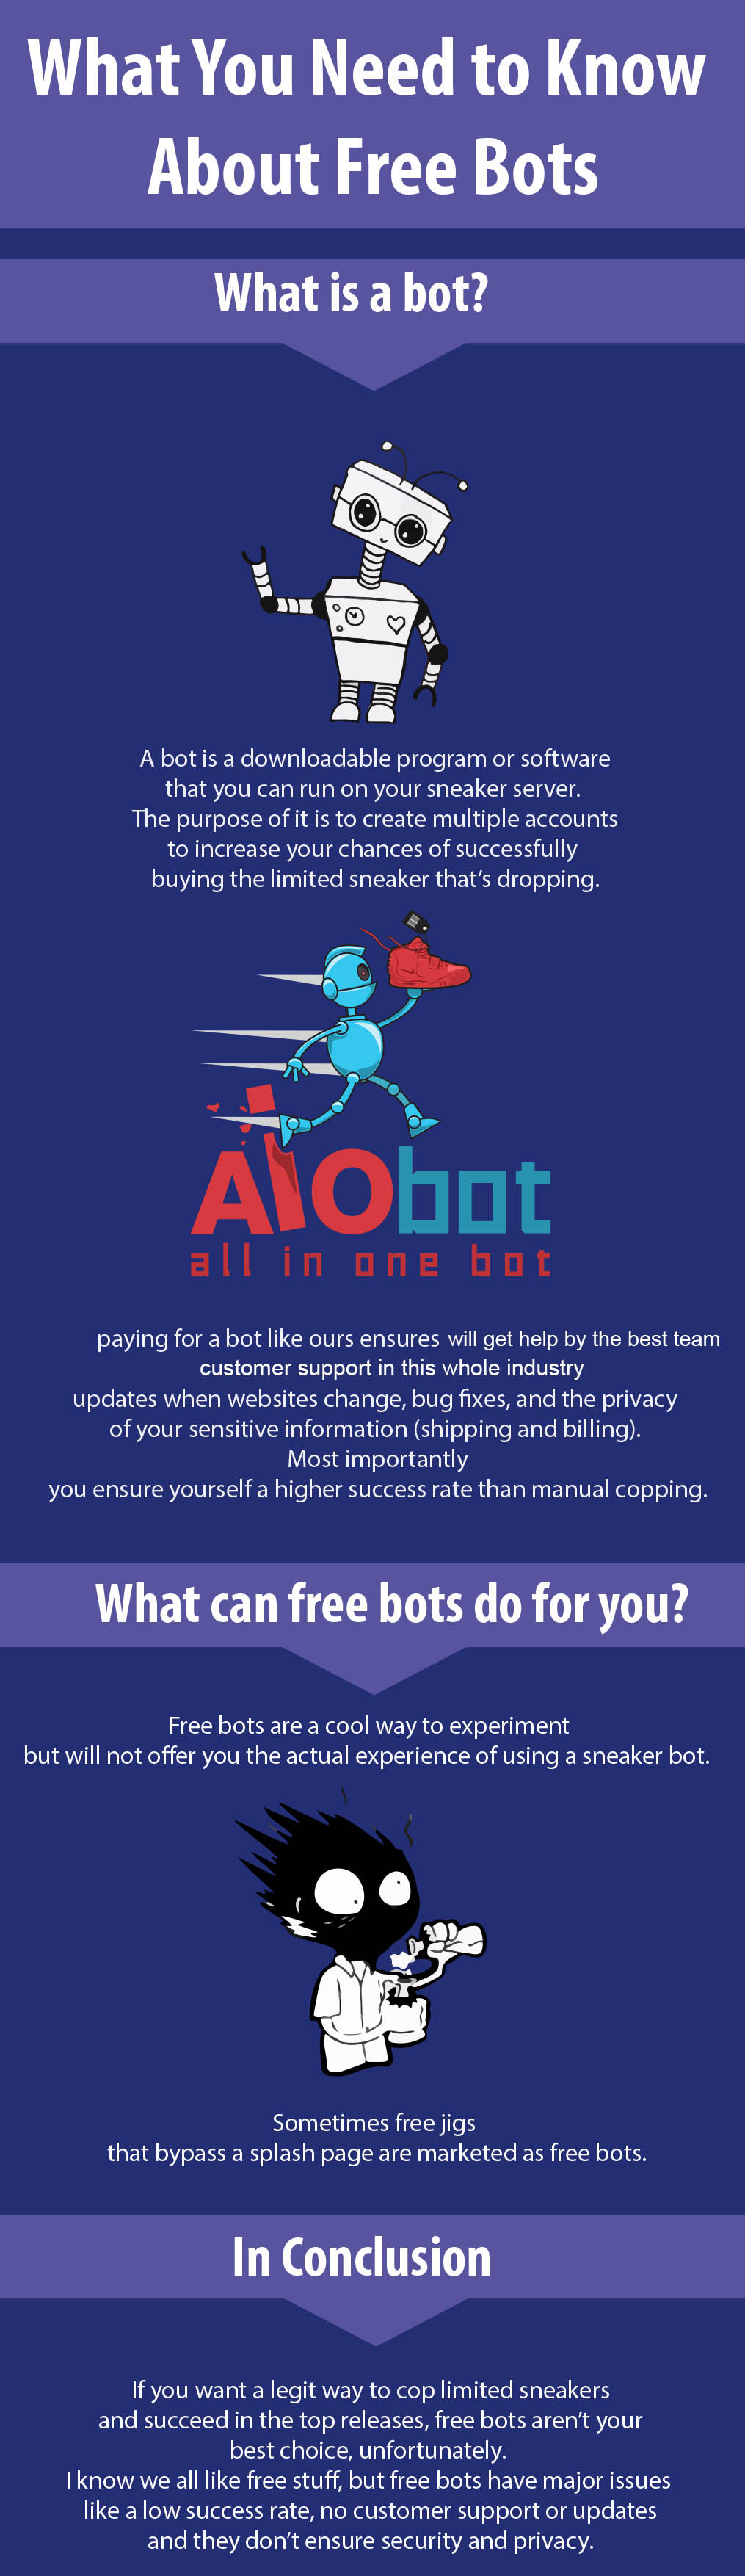 What You Need to Know About Free Bots Before Using Them